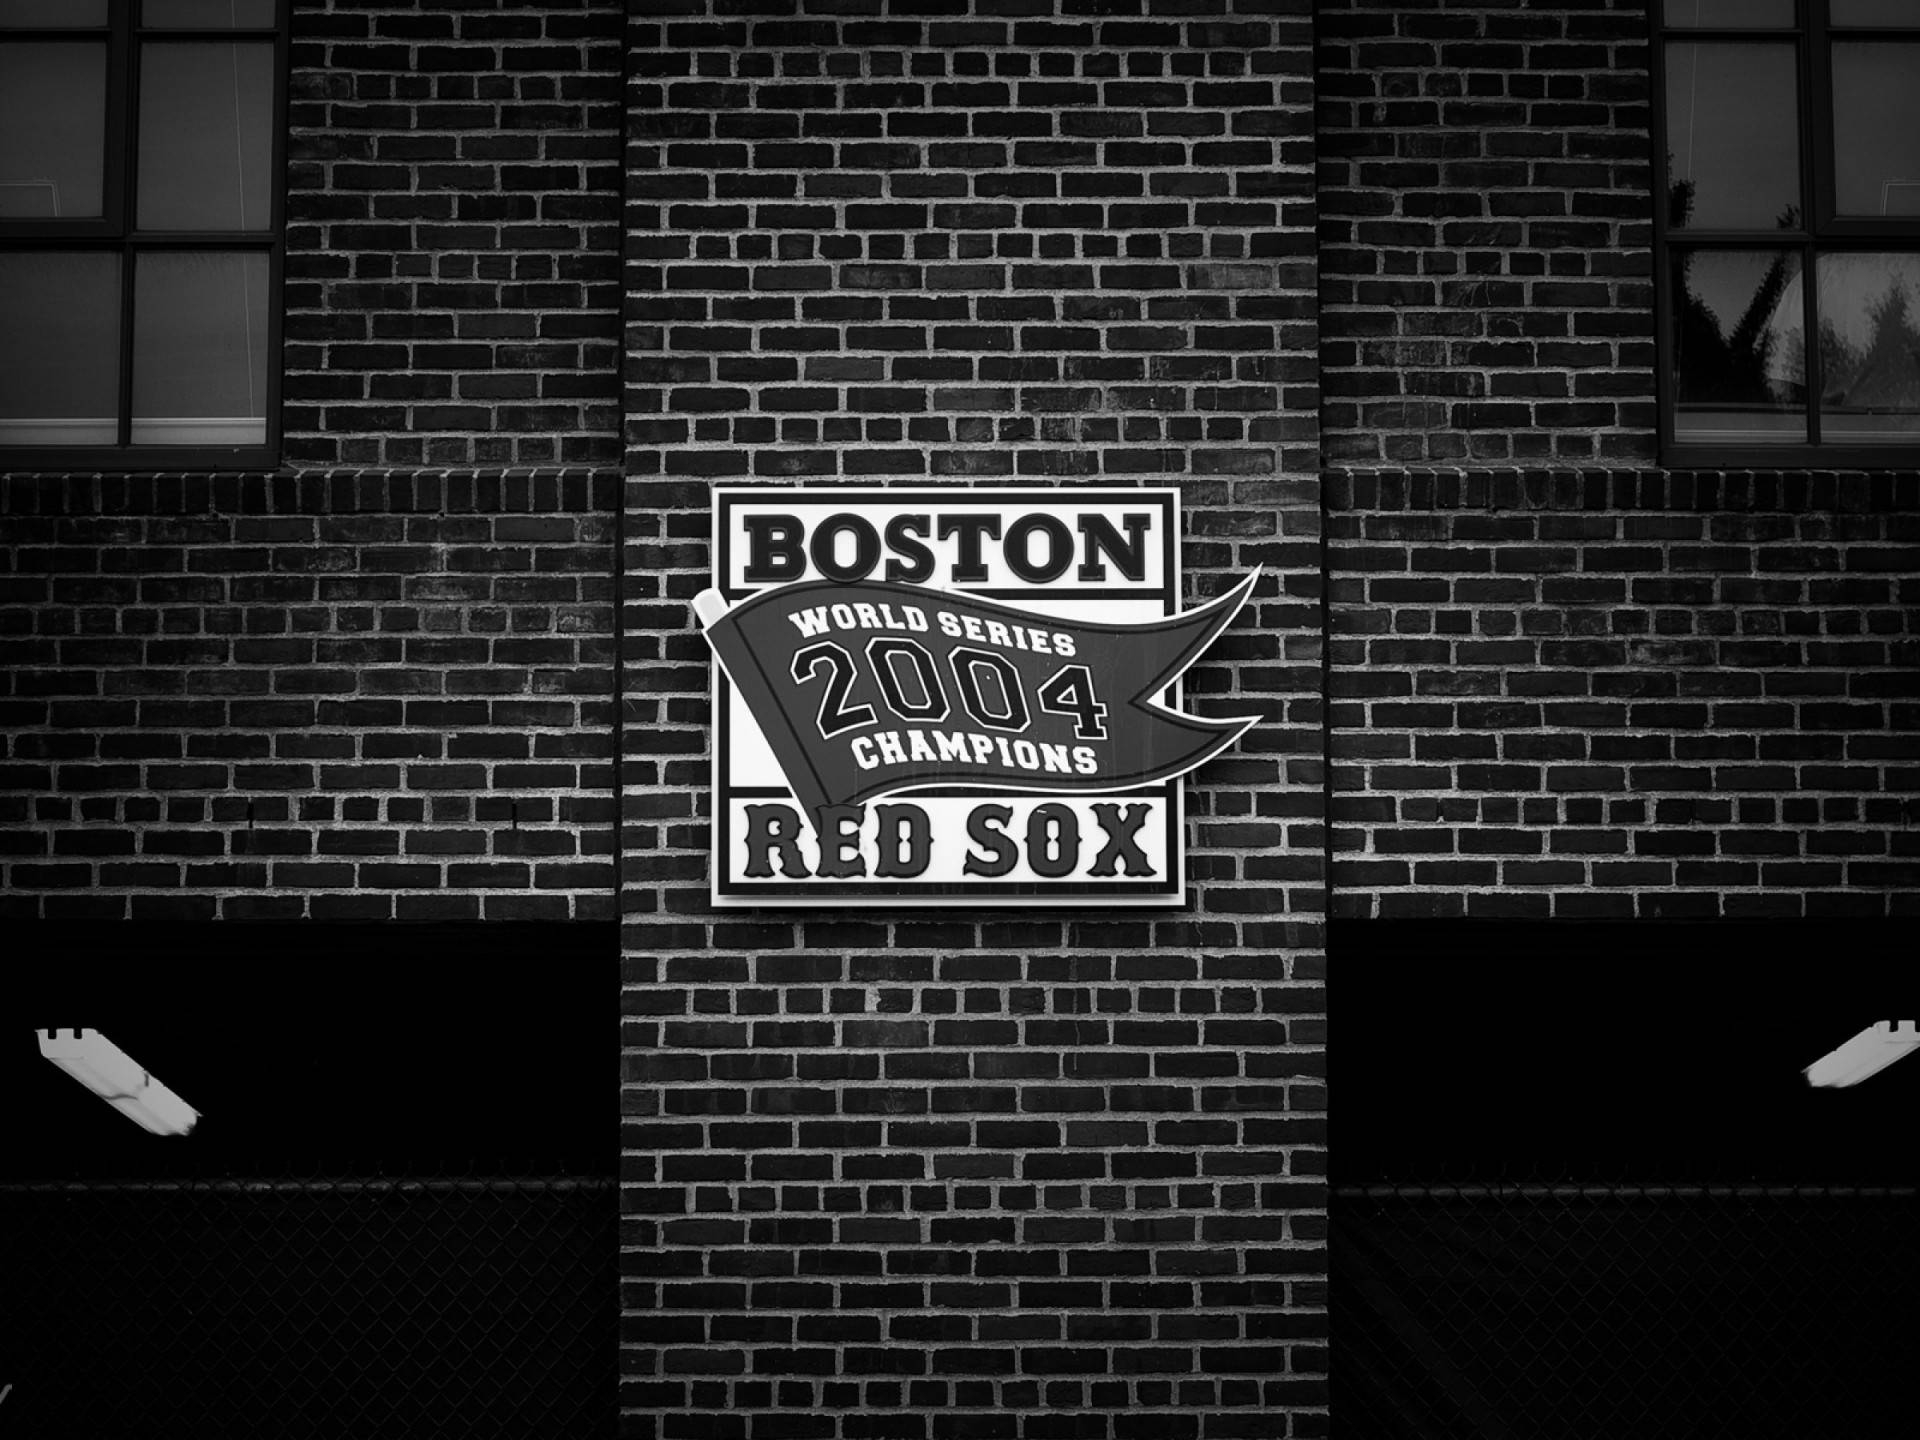 Boston Red Sox Ipad Wallpaper, Size: 1920X1440 #559 | Amazingpict Pertaining To 2017 Boston Red Sox Wall Art (View 22 of 25)